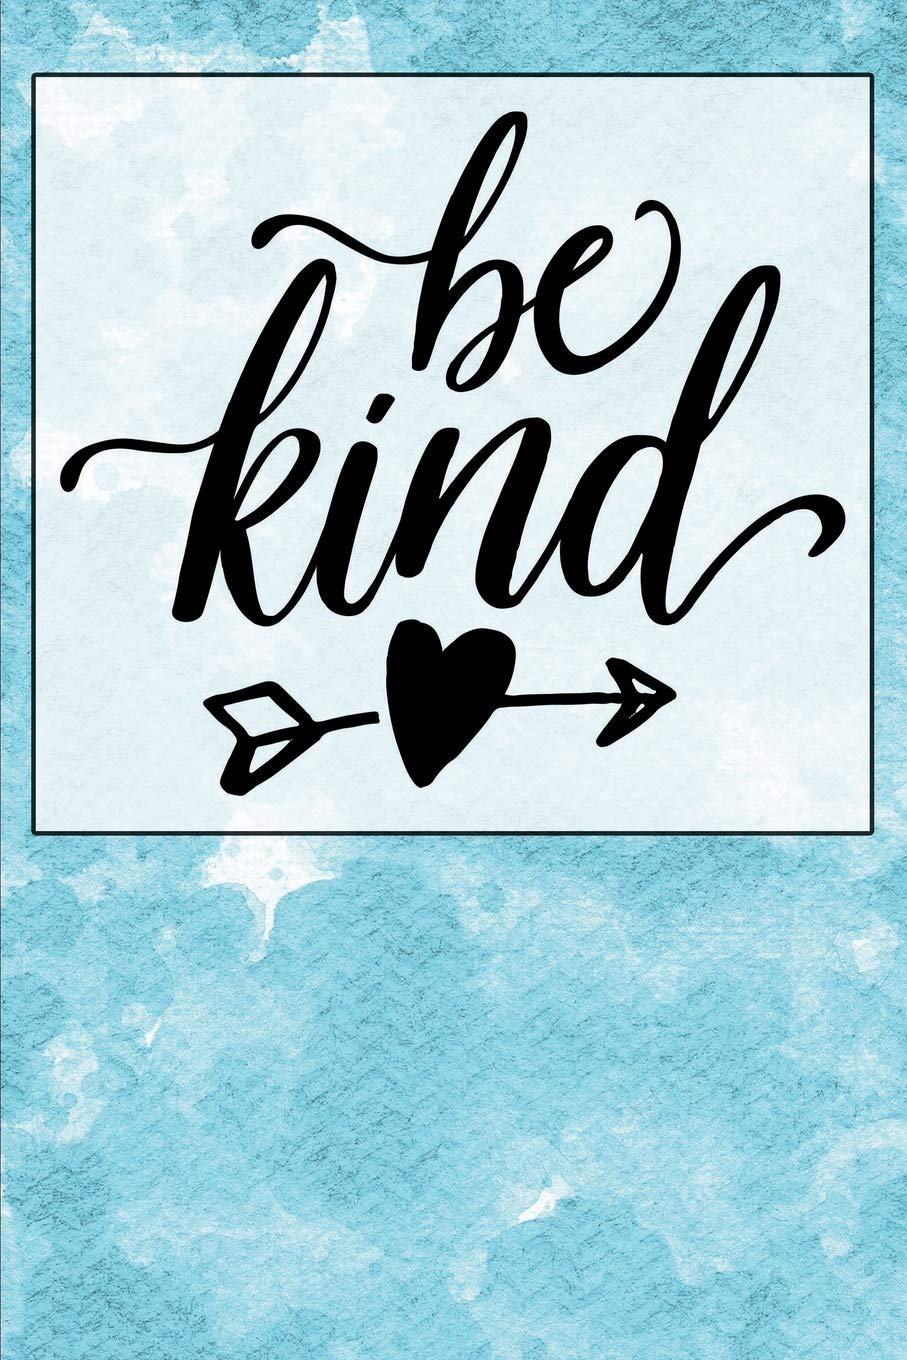 Read Online Be Kind: A Positive, Motivational and Inspirational Quote Notebook & Blank Lined Idea Journal with Cute and Trendy Design for Girls, Teens, and Women (Composition Book, 120 pages, 6x9 inches) PDF ePub book